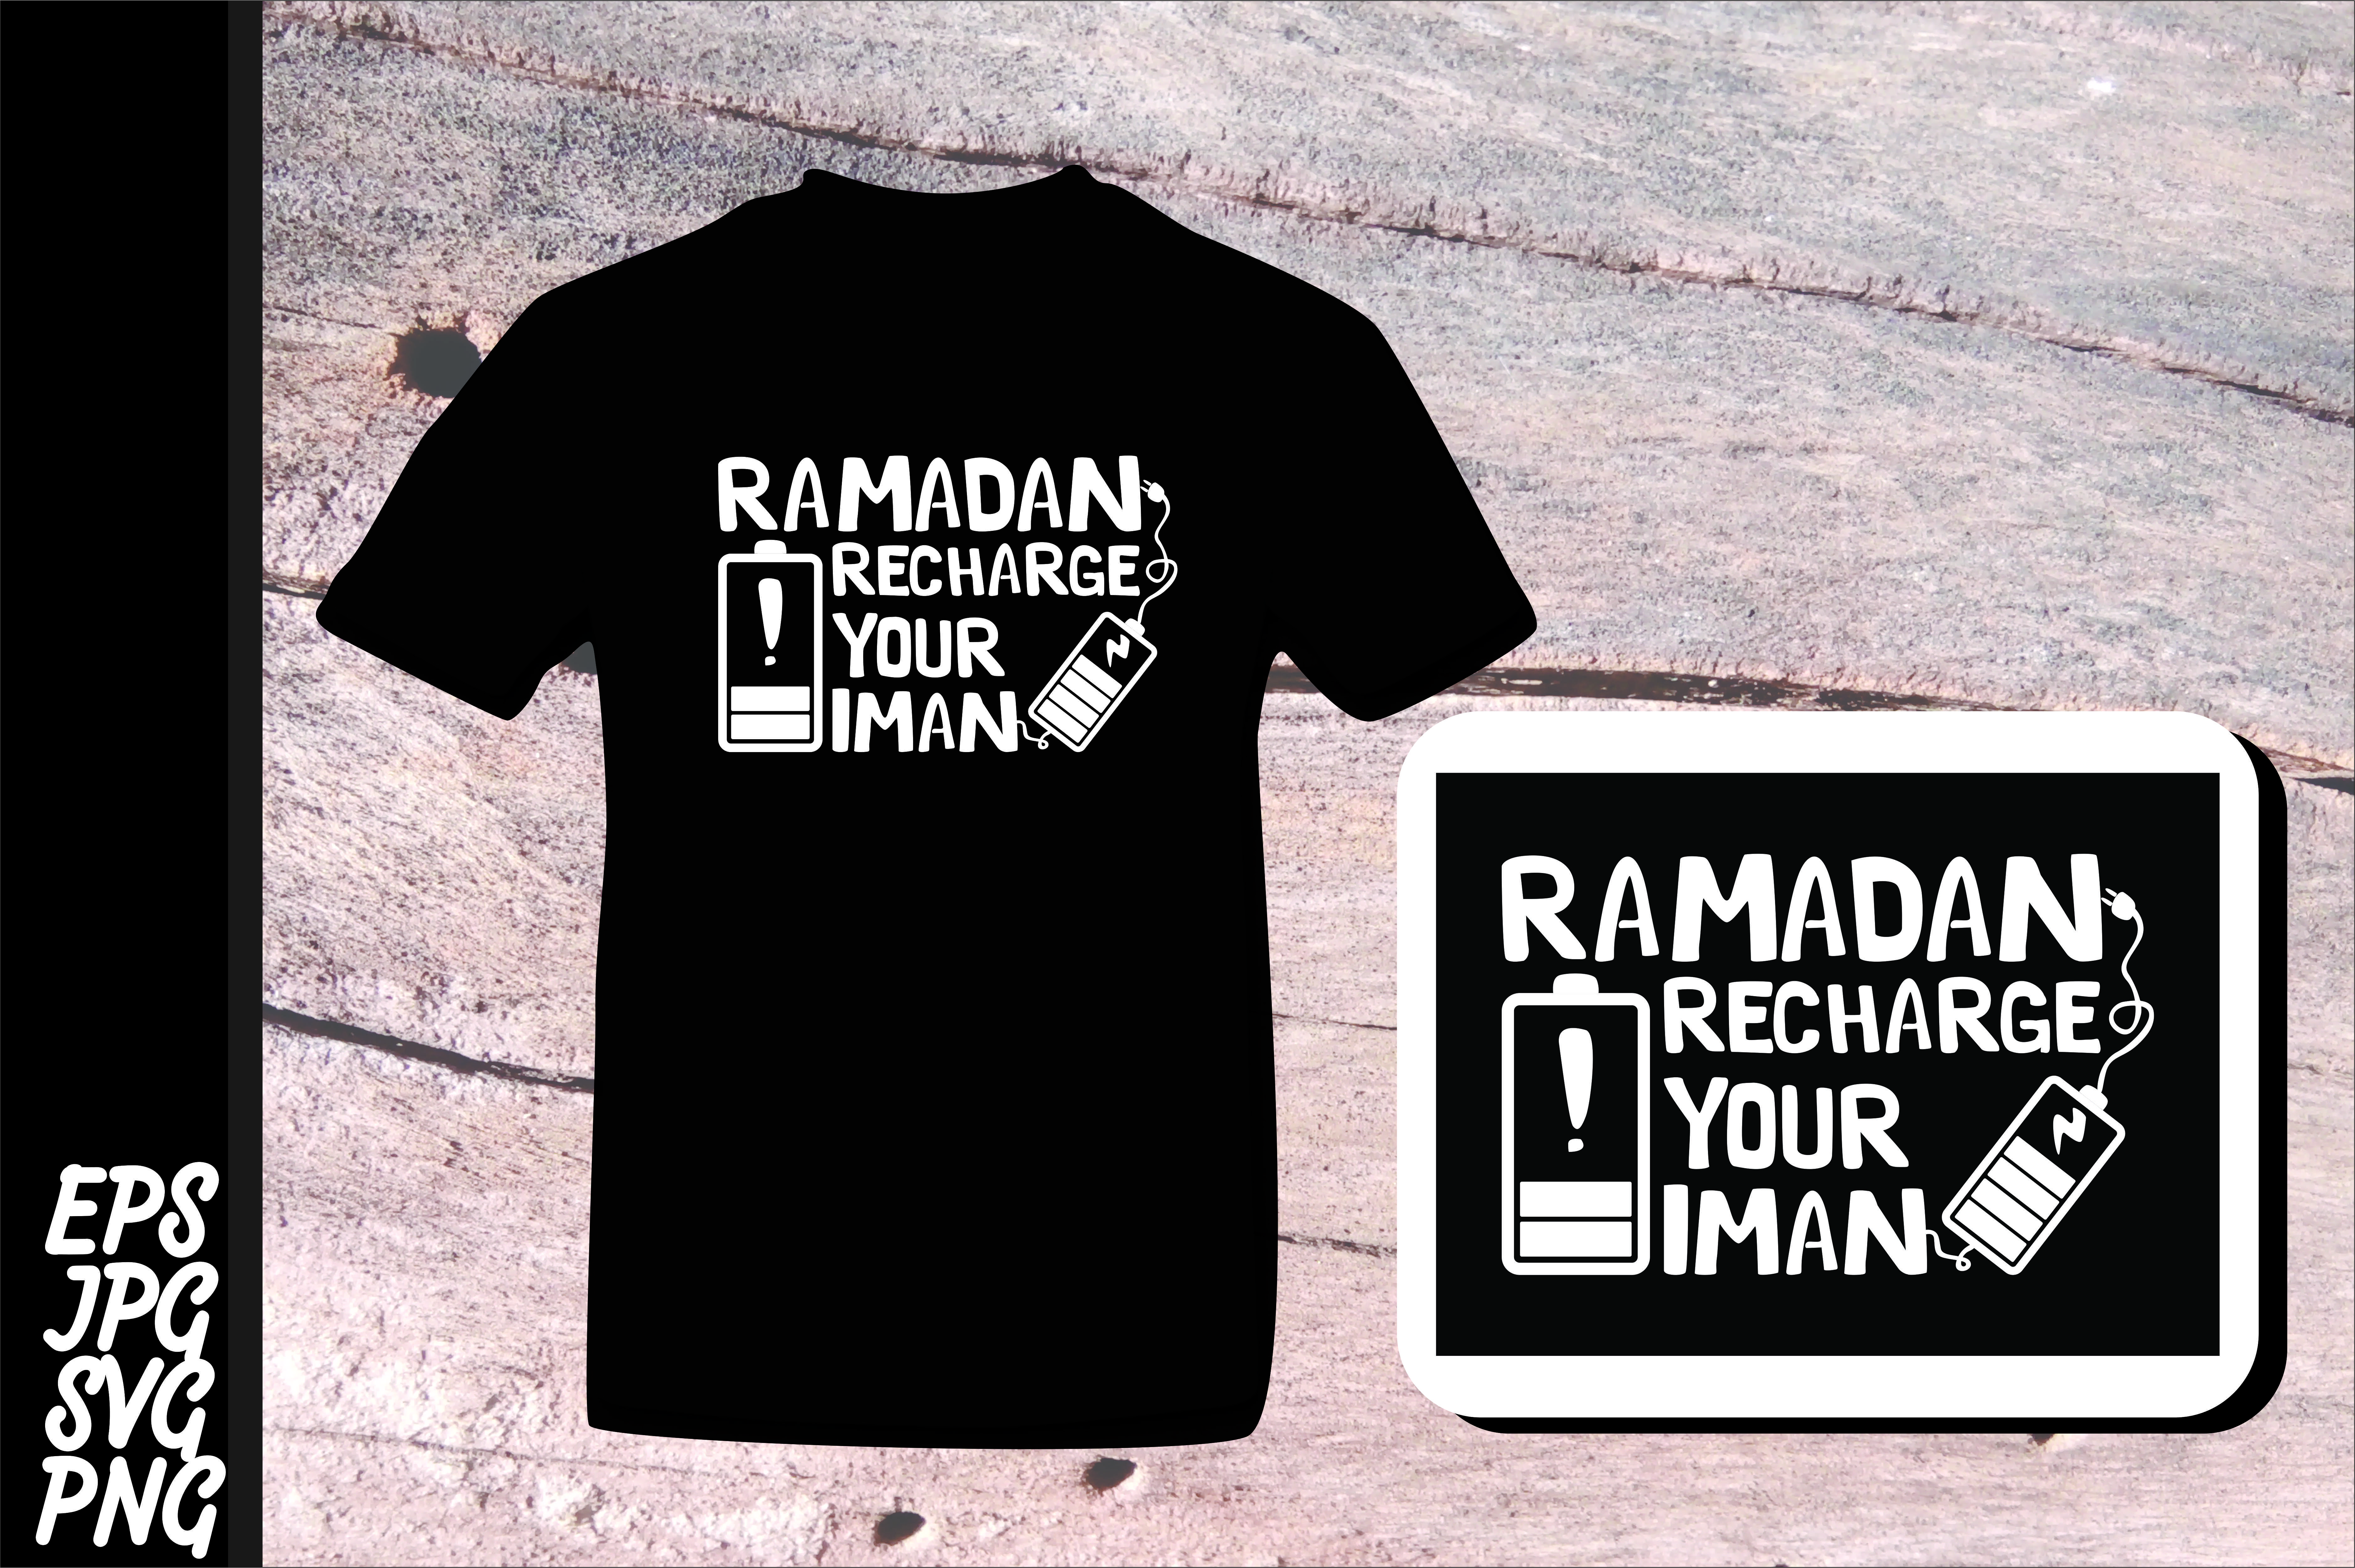 Download Free Ramadan Recharge Your Iman Graphic By Arsa Adjie Creative Fabrica for Cricut Explore, Silhouette and other cutting machines.